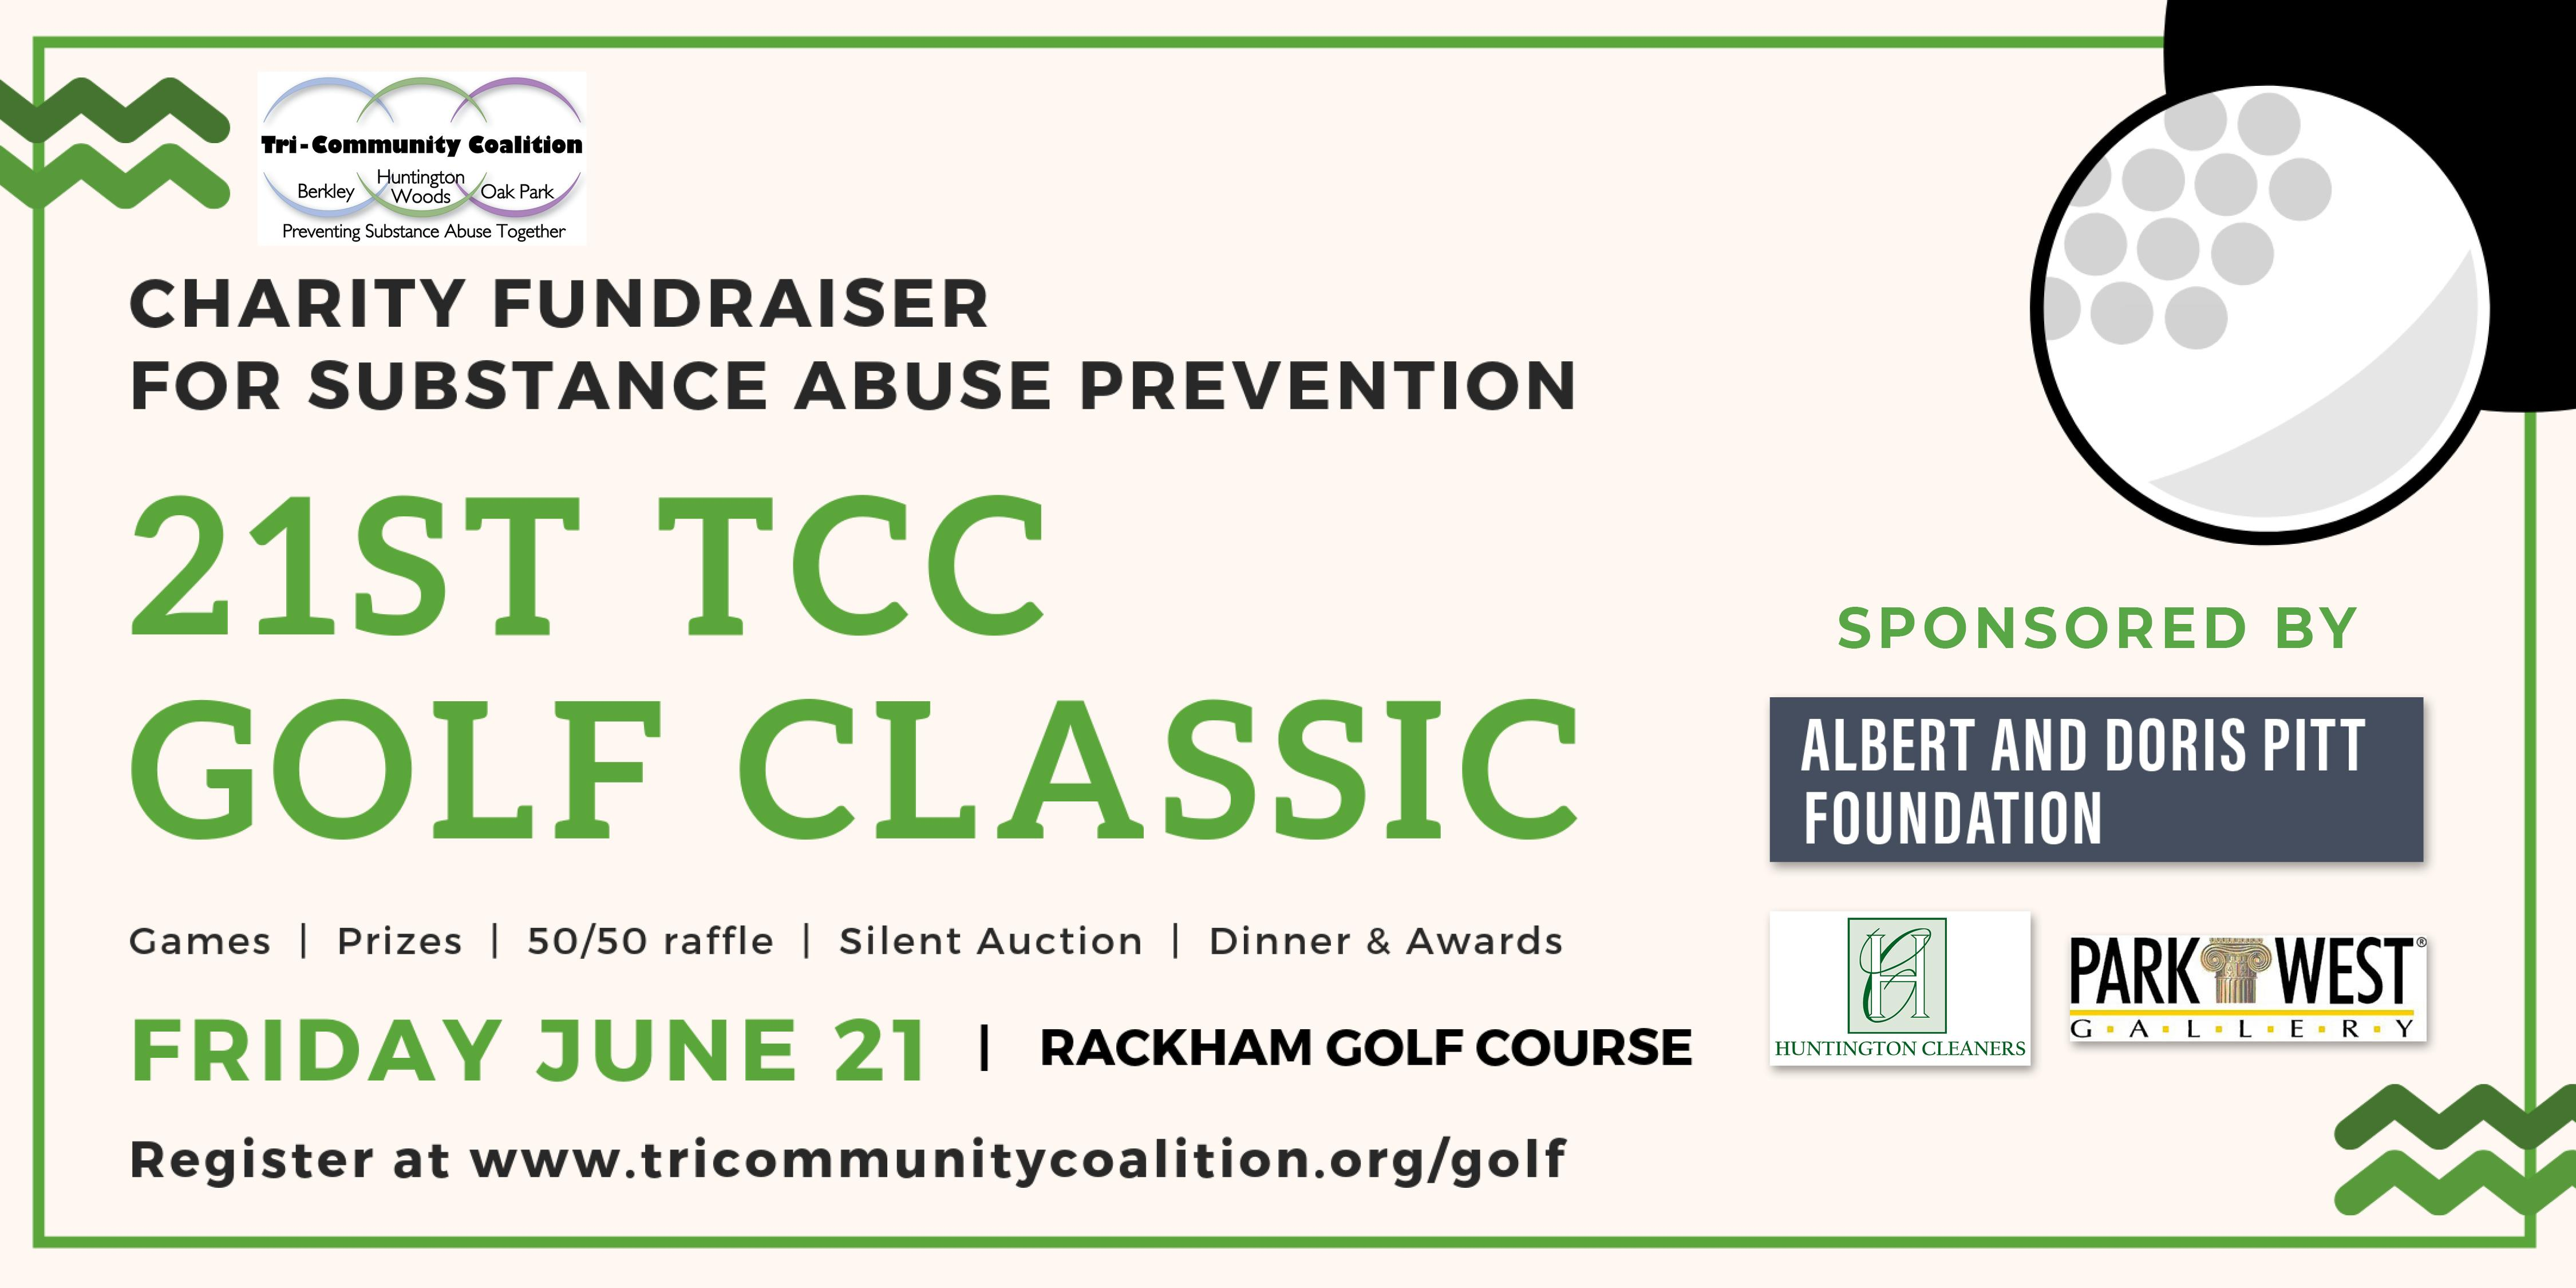 Charity Golf Classic for the Tri-Community Coalition